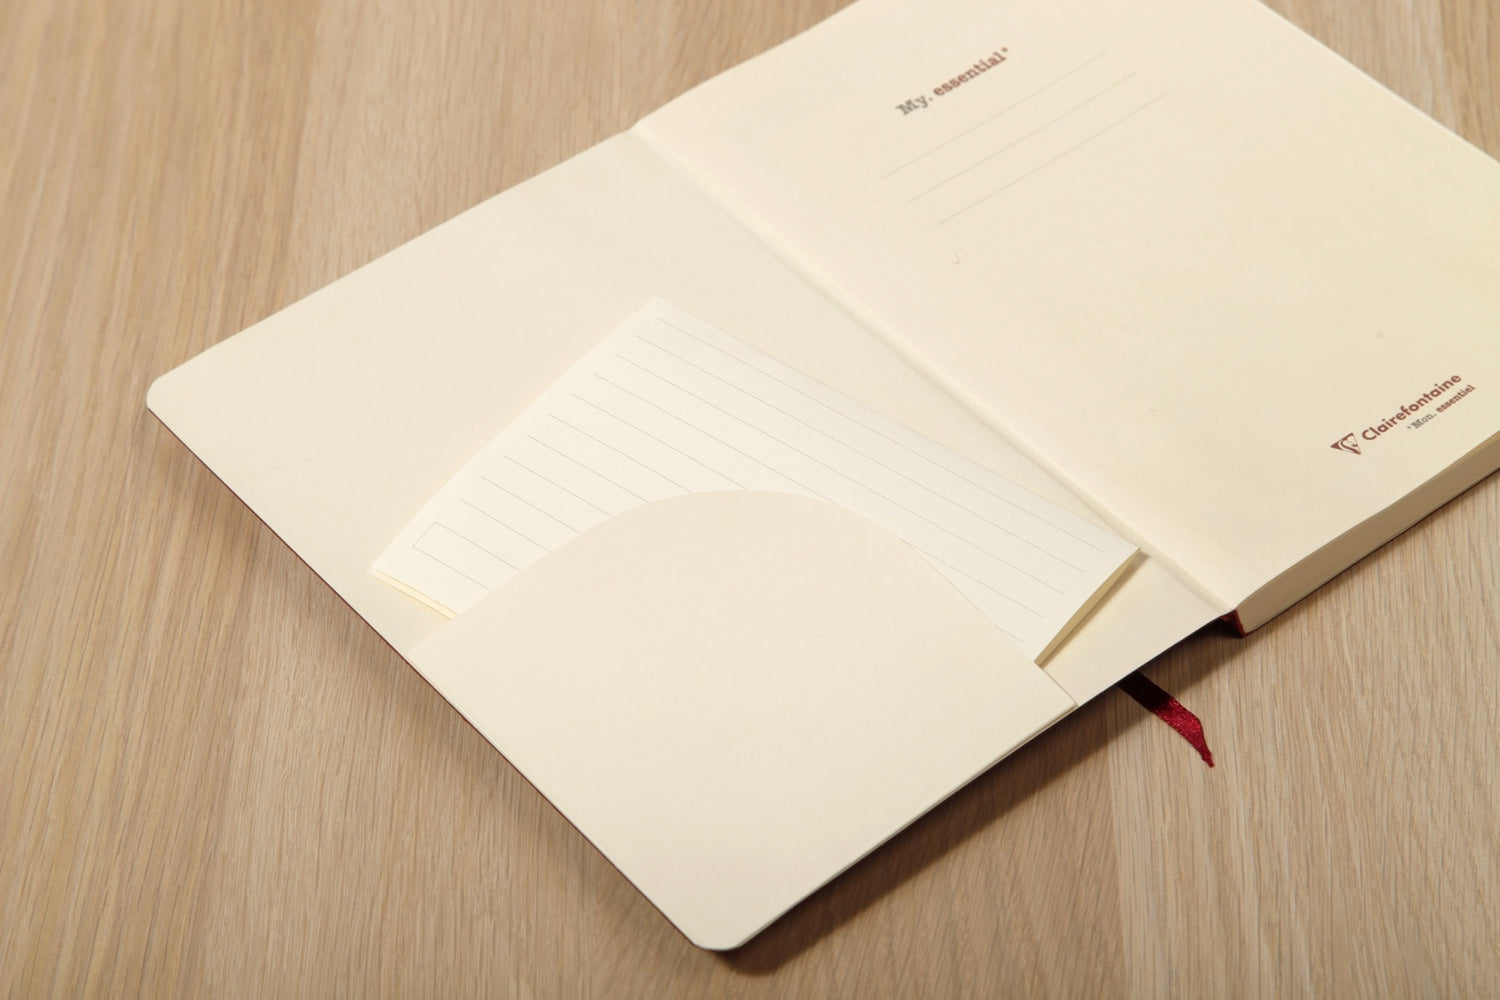 Clairefontaine Basic My Essential A5 Notebook - Tan, Dot Grid